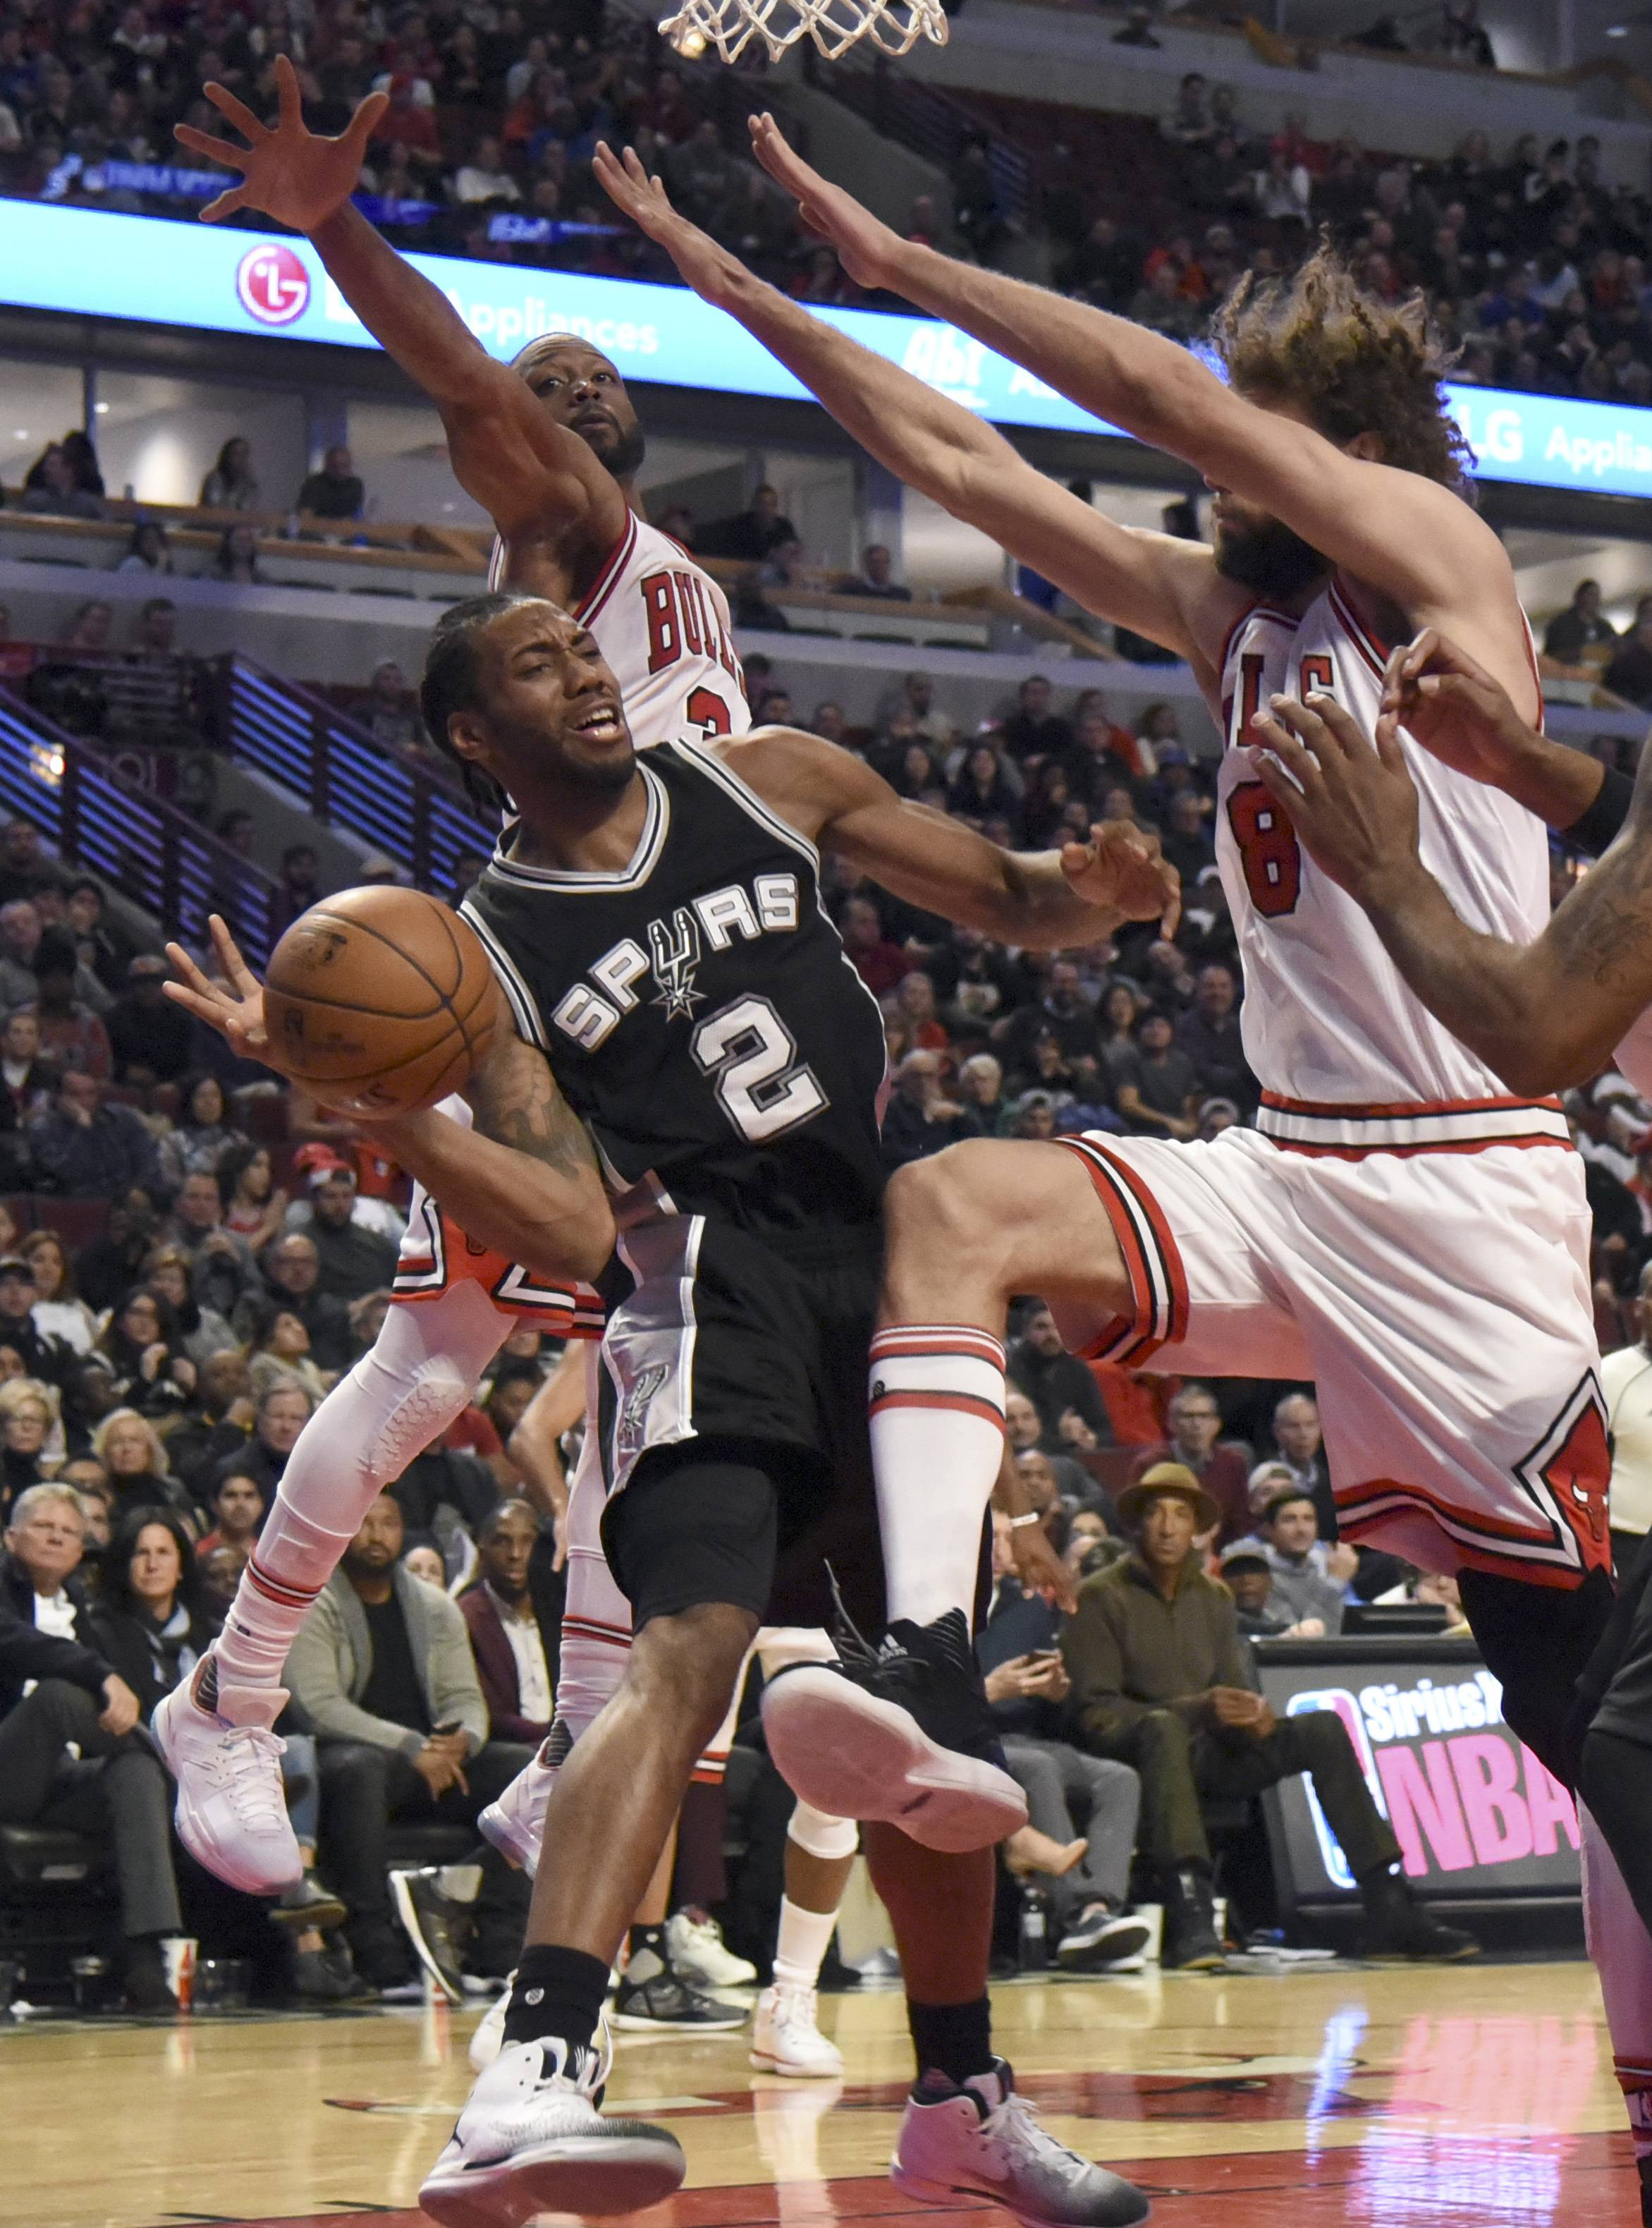 The Bulls handed the San Antonio Spurs their first road loss of the season on Thursday night. Once again, the Bulls are showing a puzzling tendency to beat good teams, then lose to average opponents. The same thing happened last season and the Bulls need to figure out how to smooth out their results.